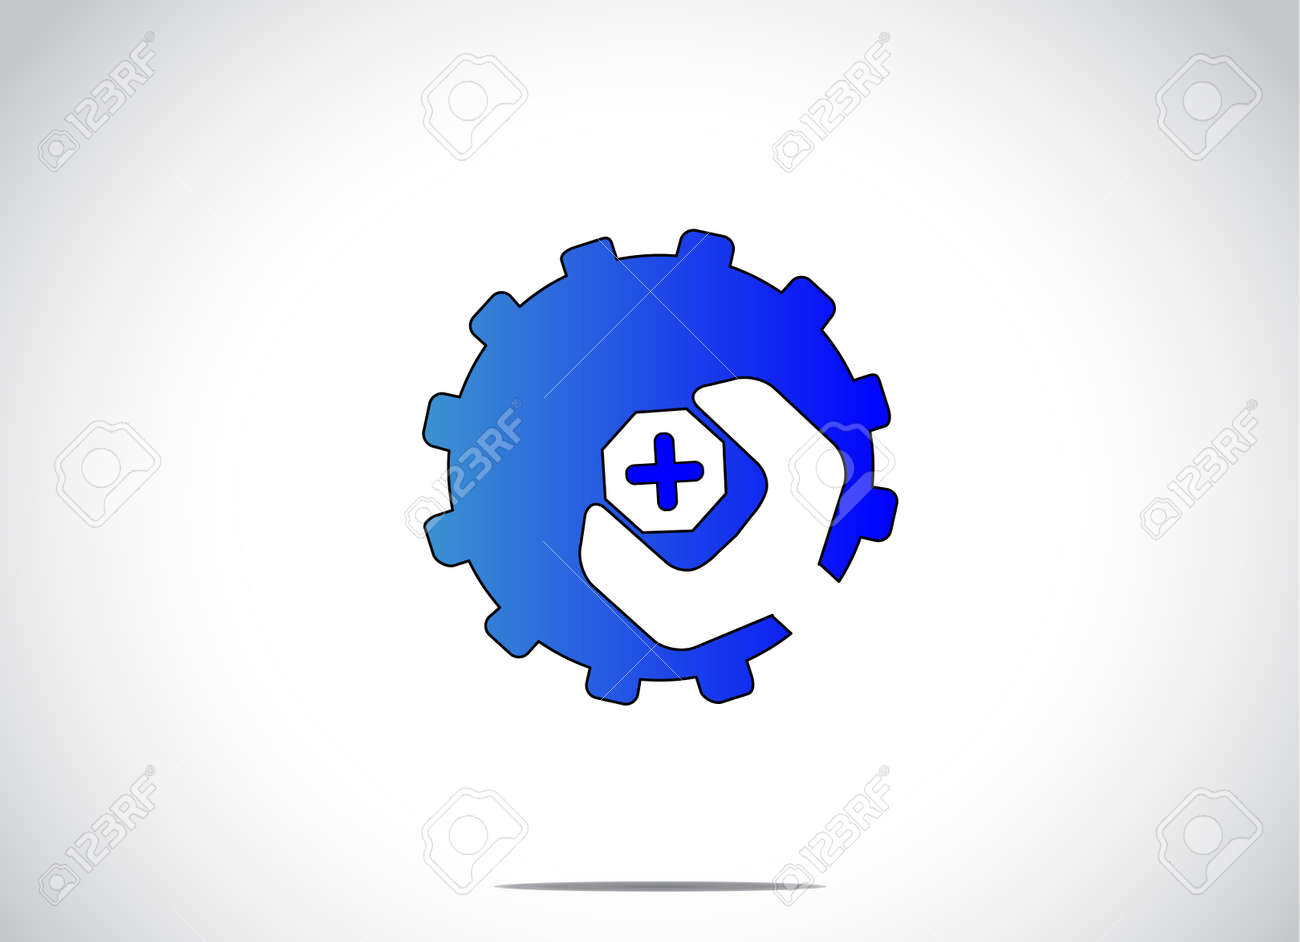 White Gear Icon Bright white background with a